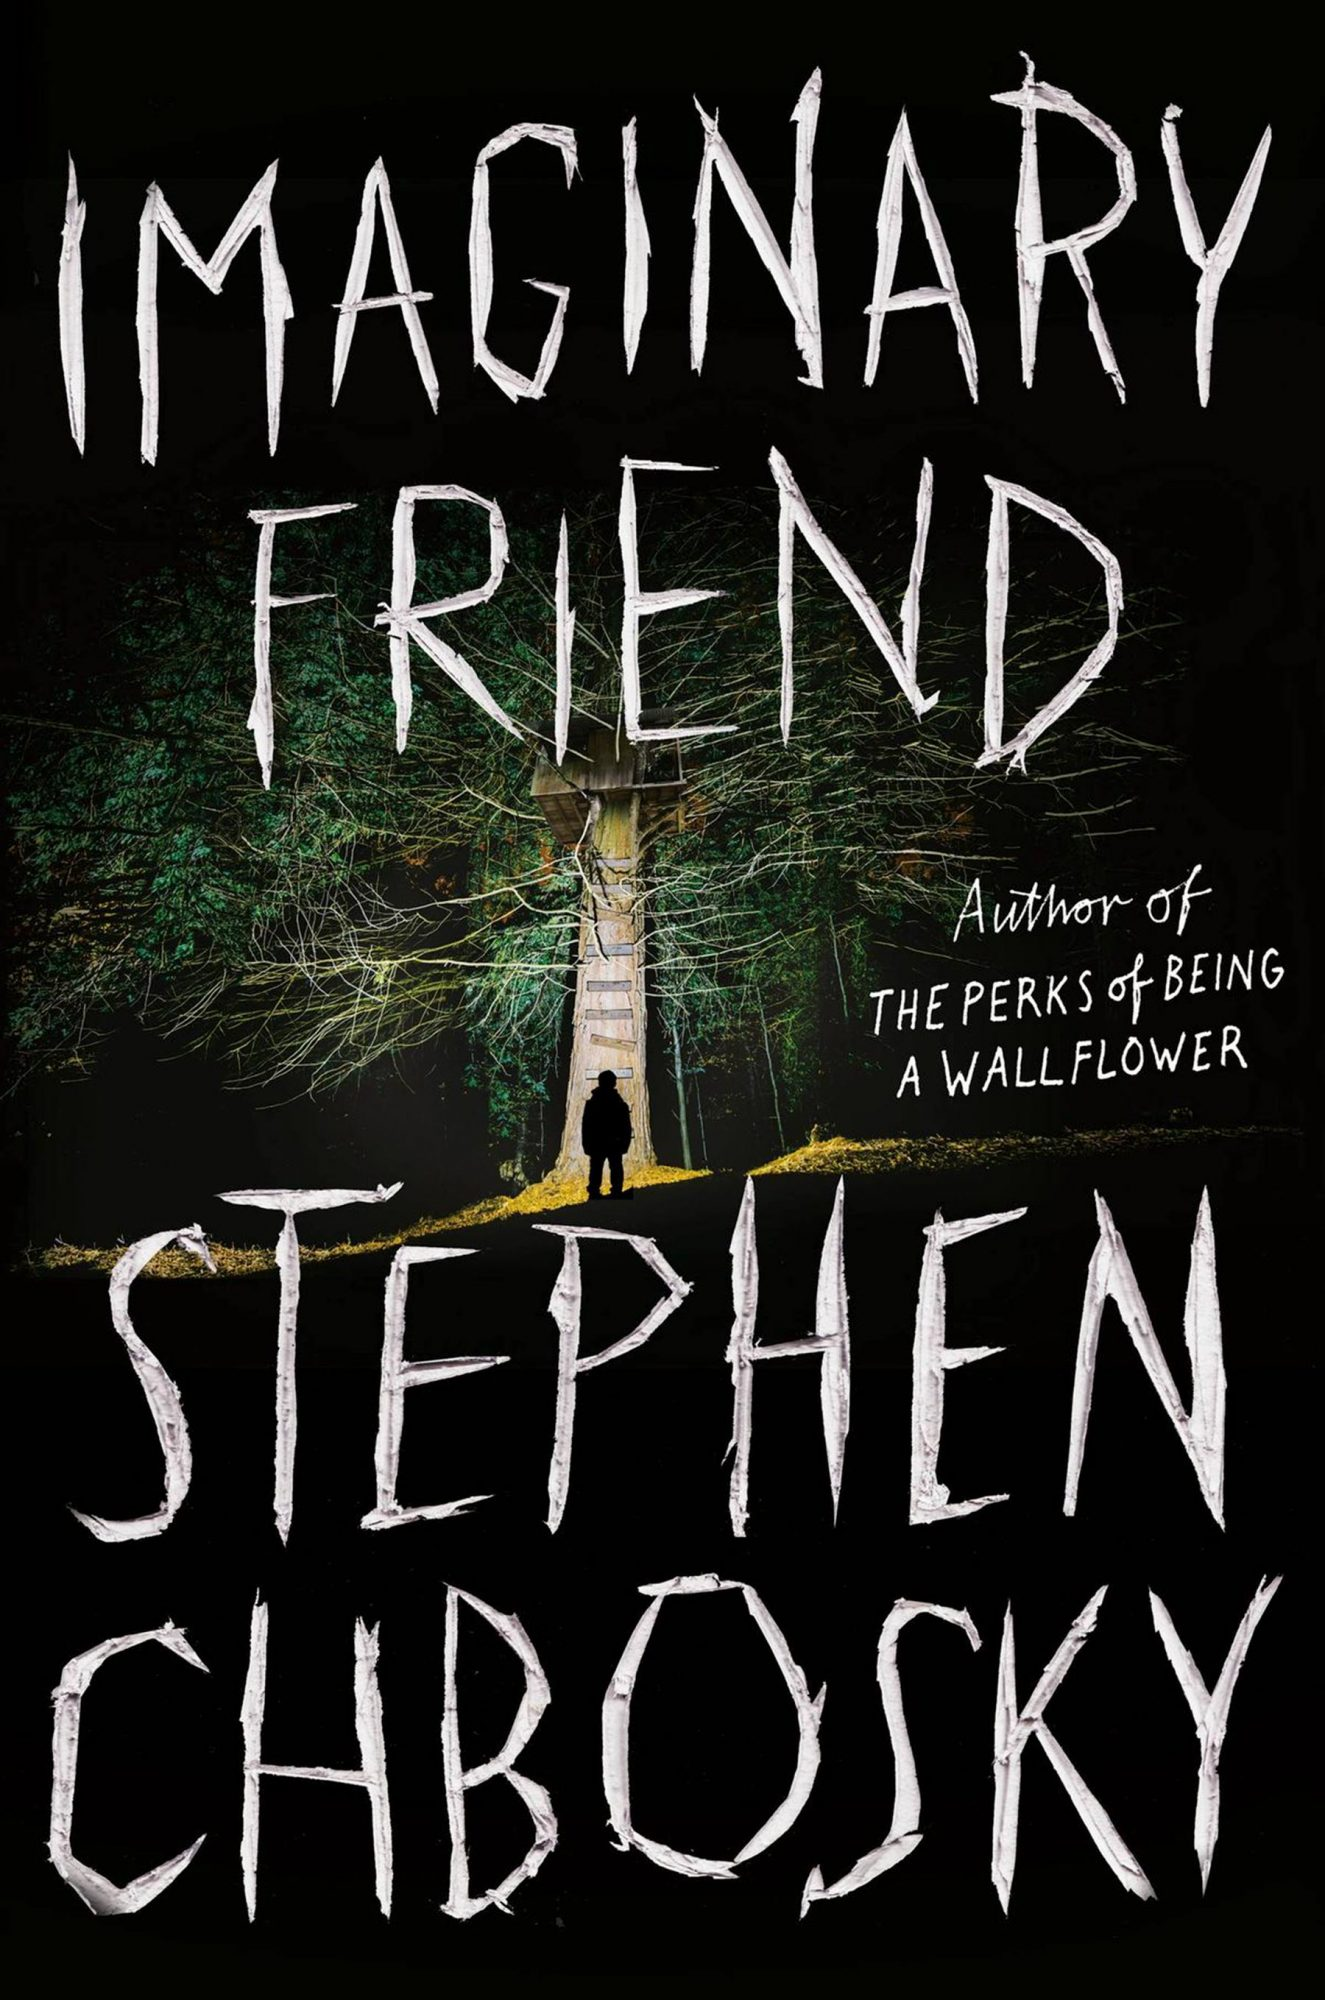 Imaginary Friend by Stephen Chbosky CR: Grand Central Publishing